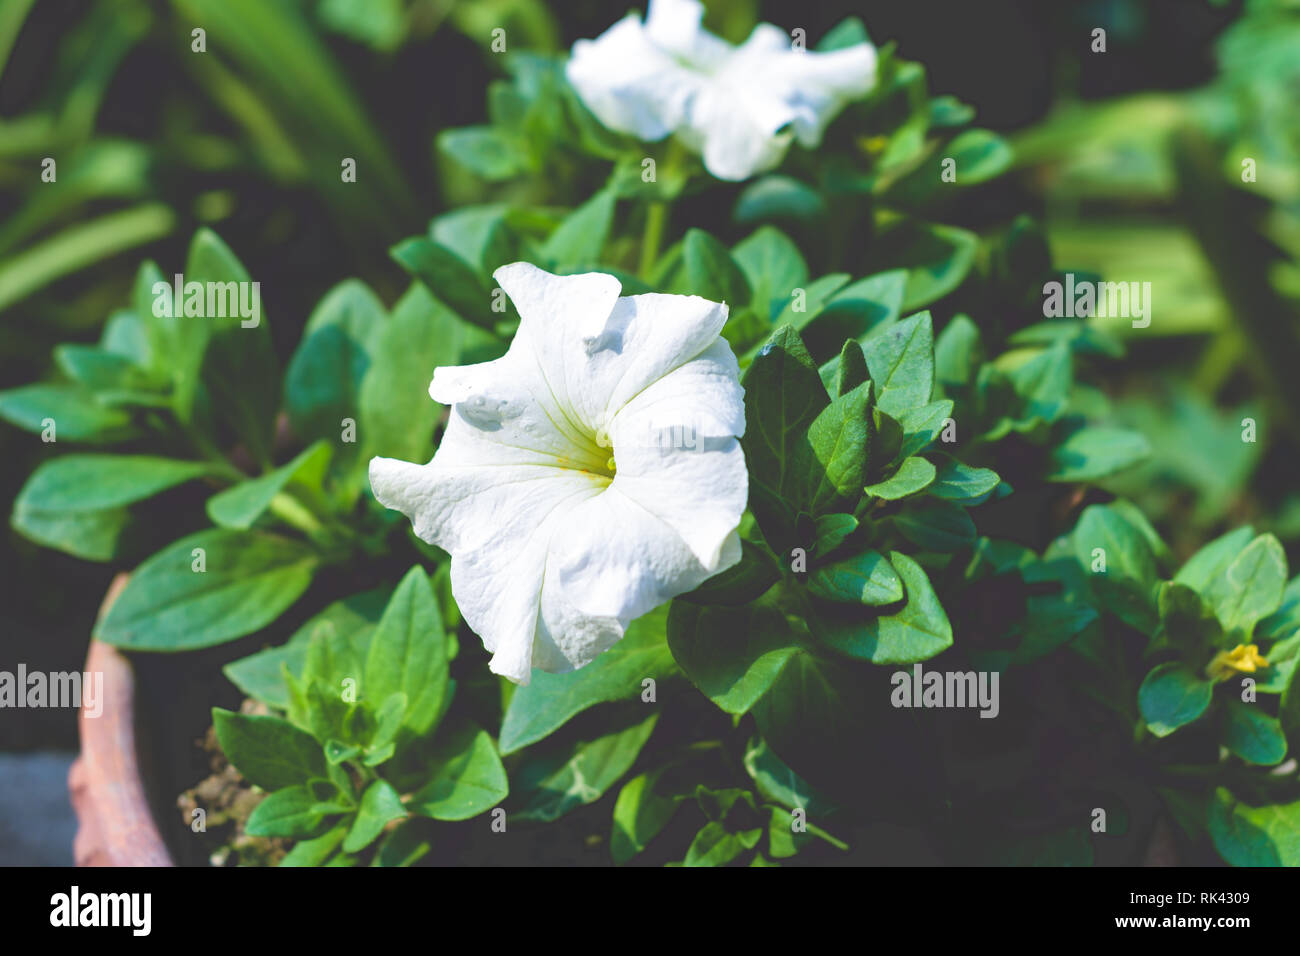 A Datura flower plant derived from the Hindu word 'Dhatura'. They are also called moonflowers, jimsonweed, devil's weed, hell's bells, thorn-apple. Th - Stock Image